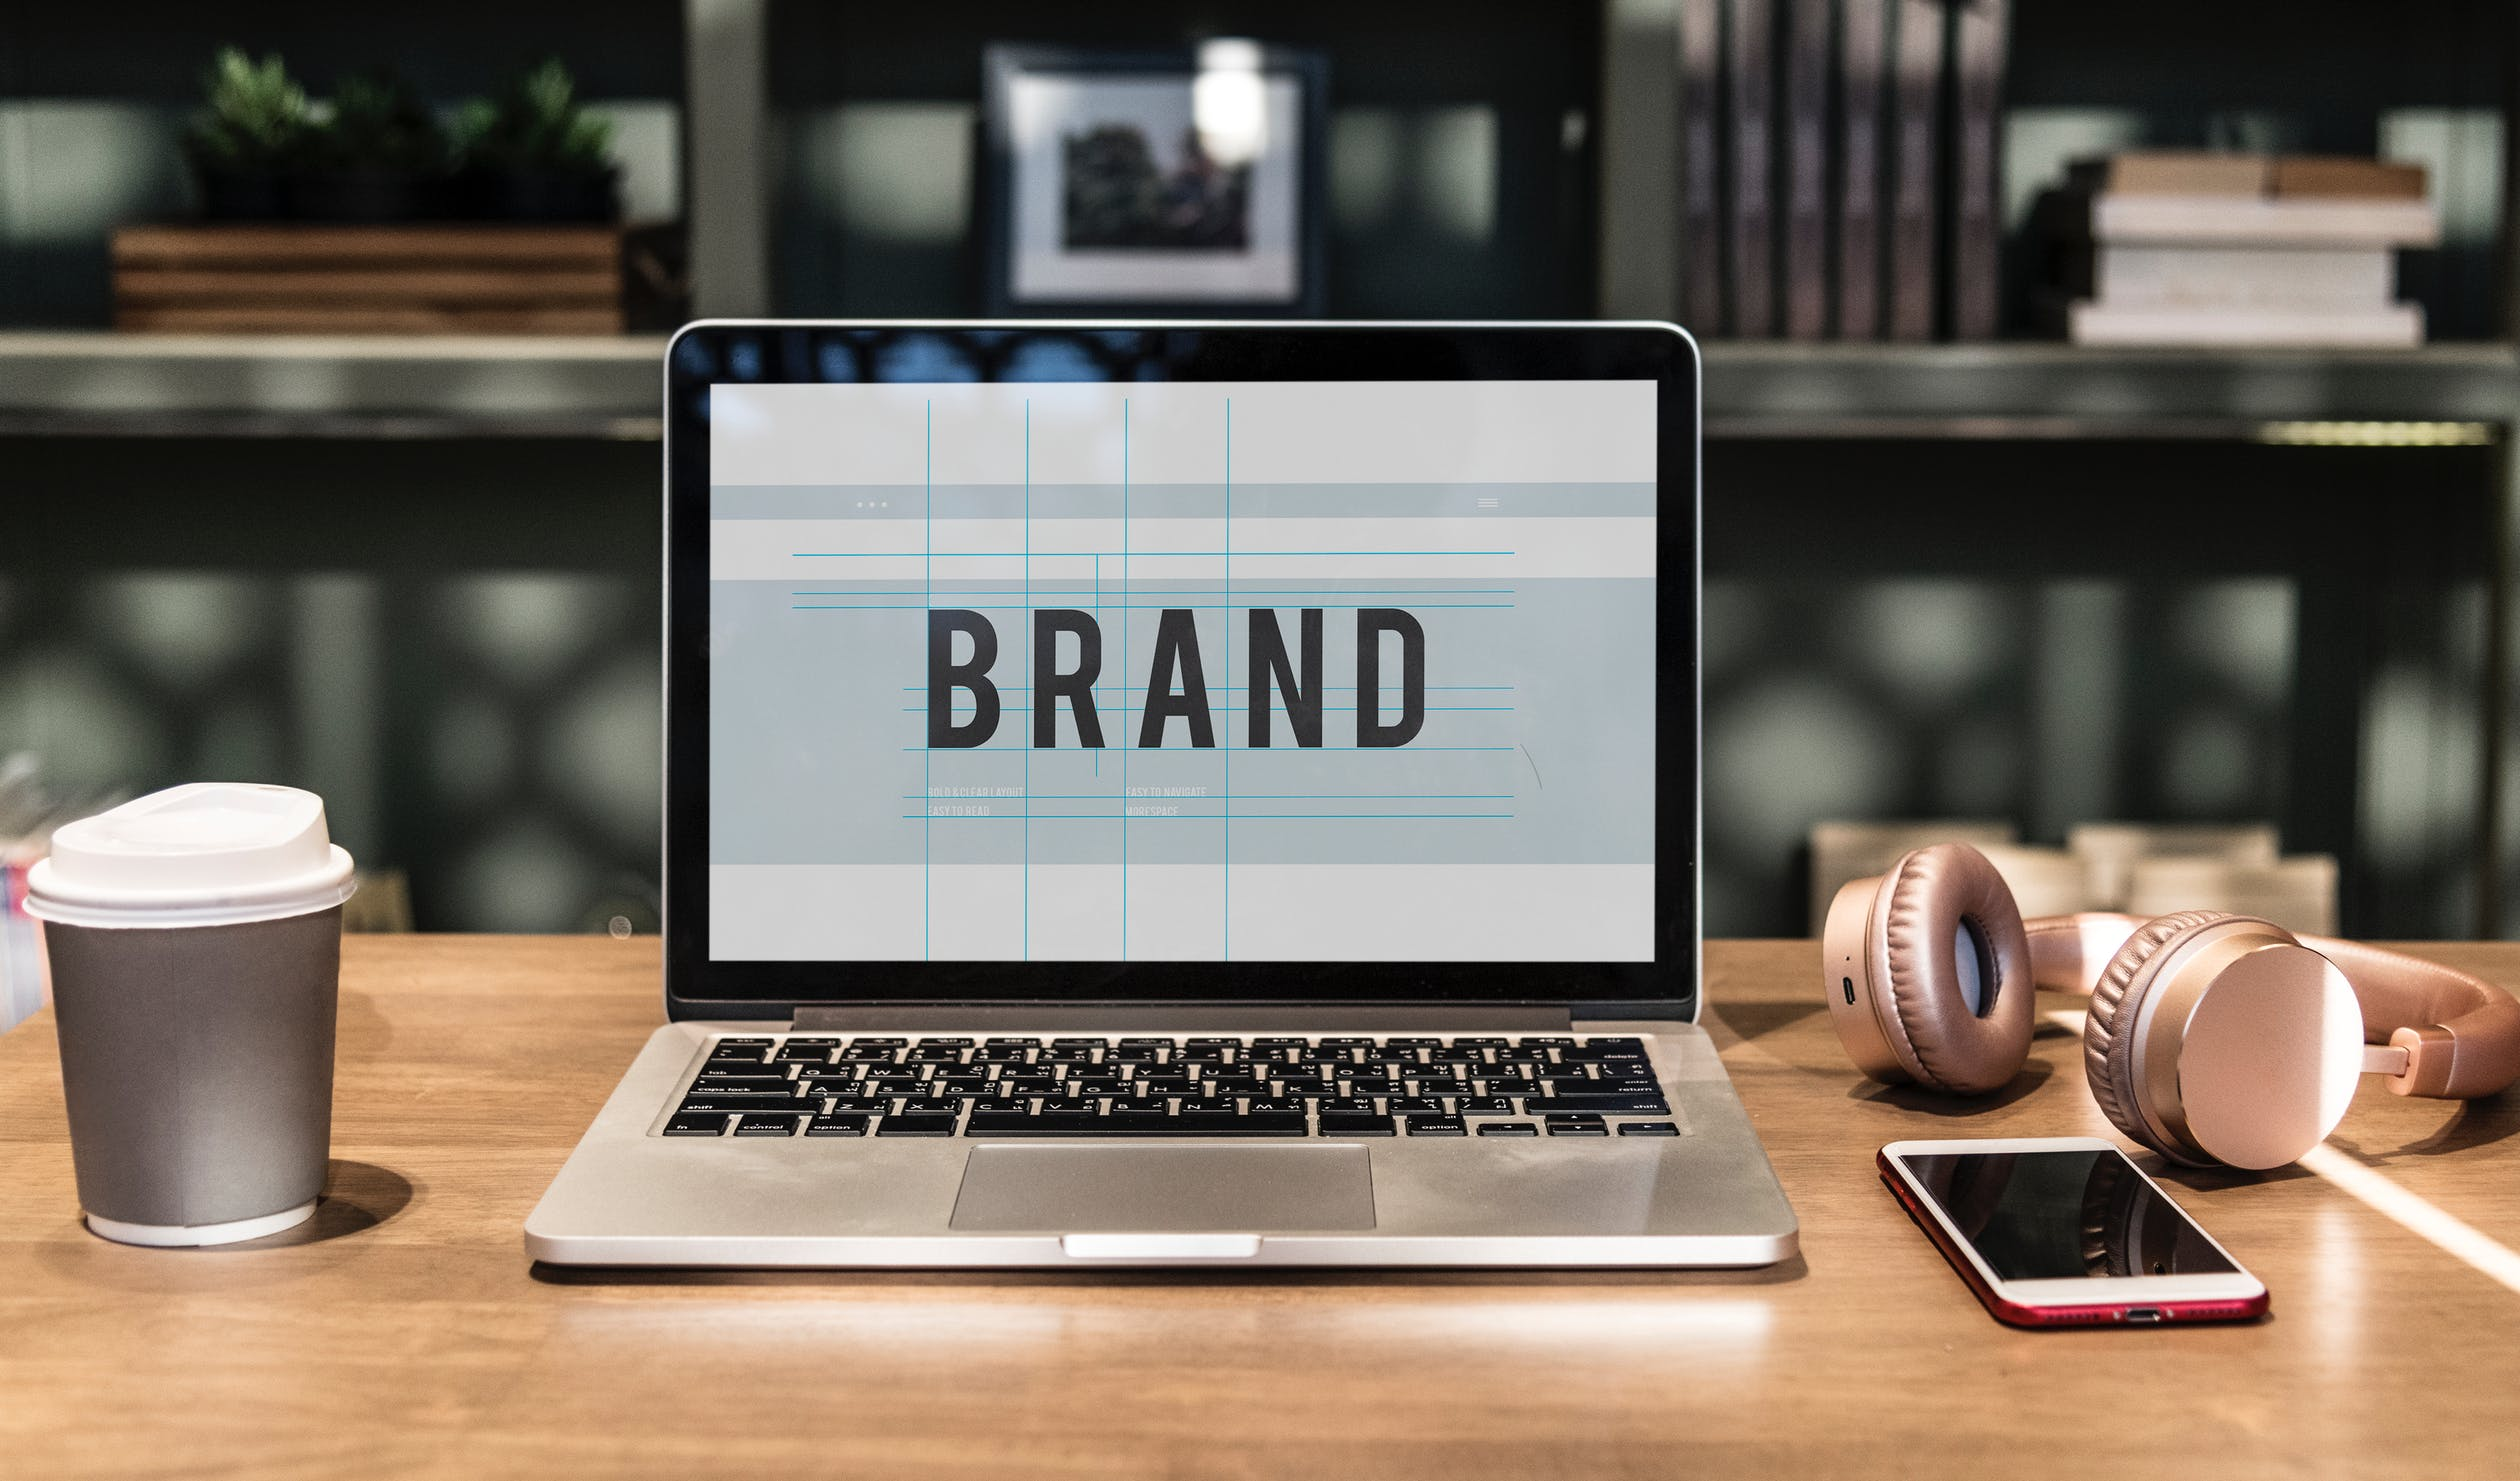 Key Things You Should Do for Making Your Brand Prominent